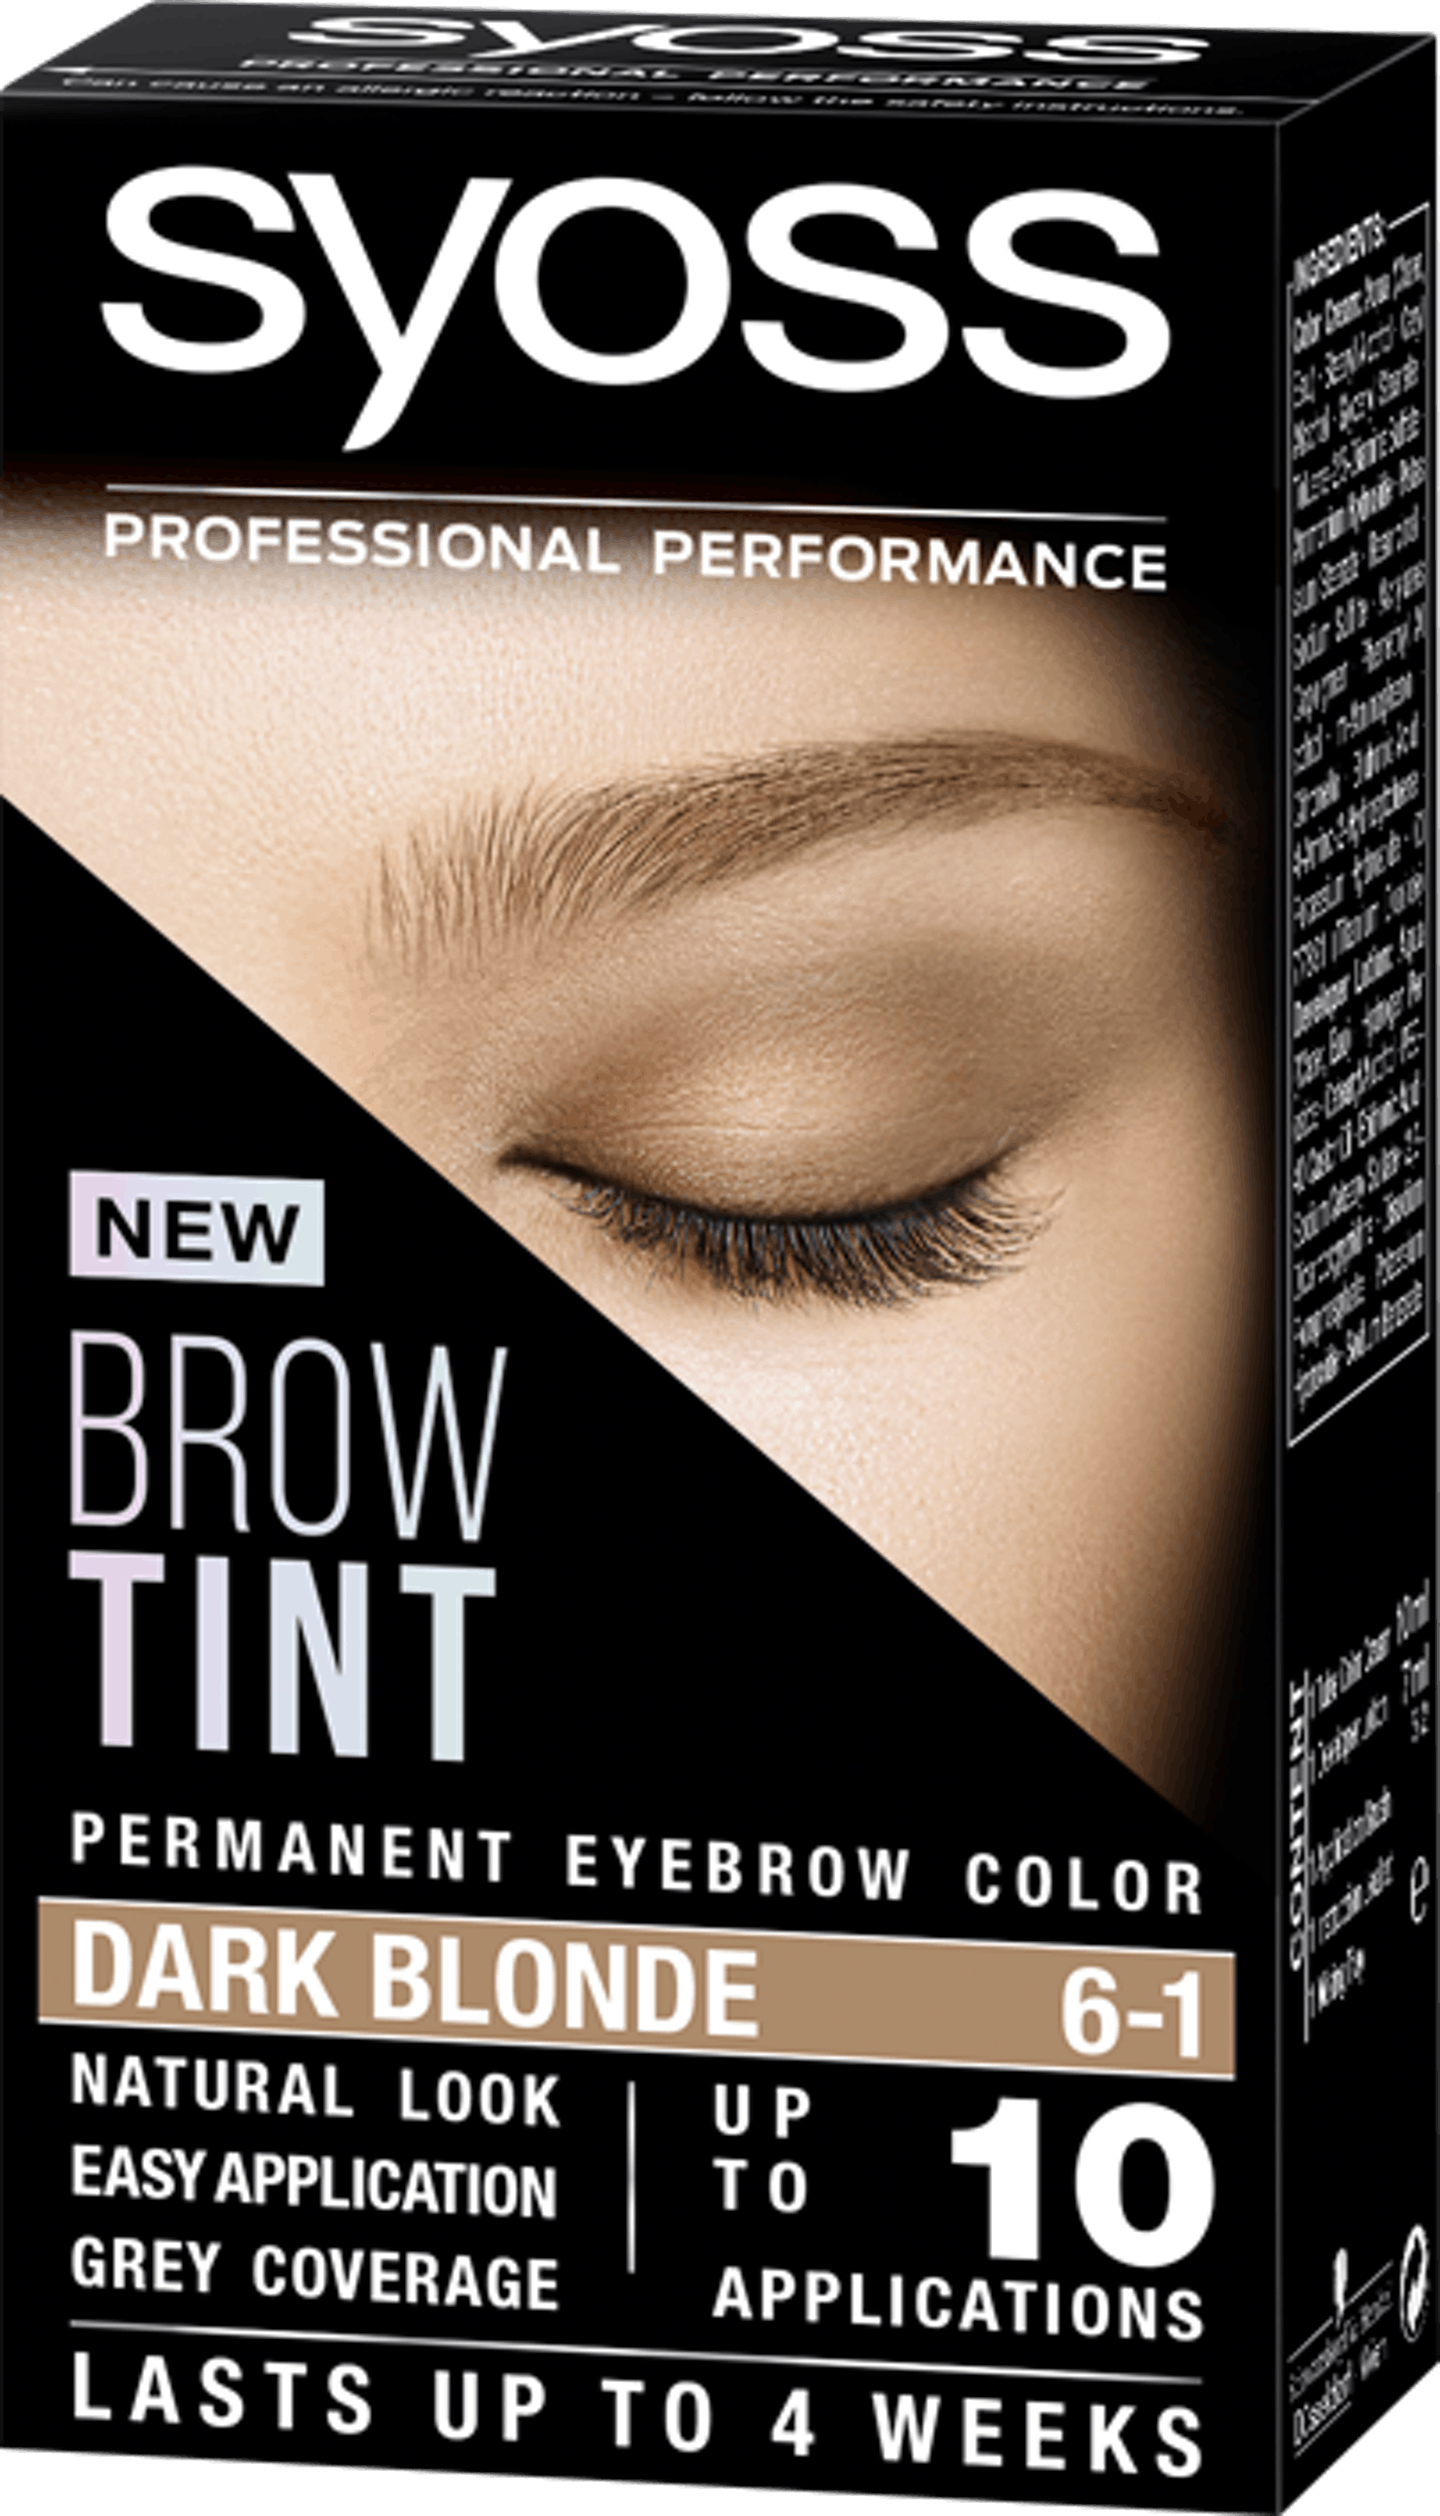 Syoss Brow Tint 6-1 Dark Blonde